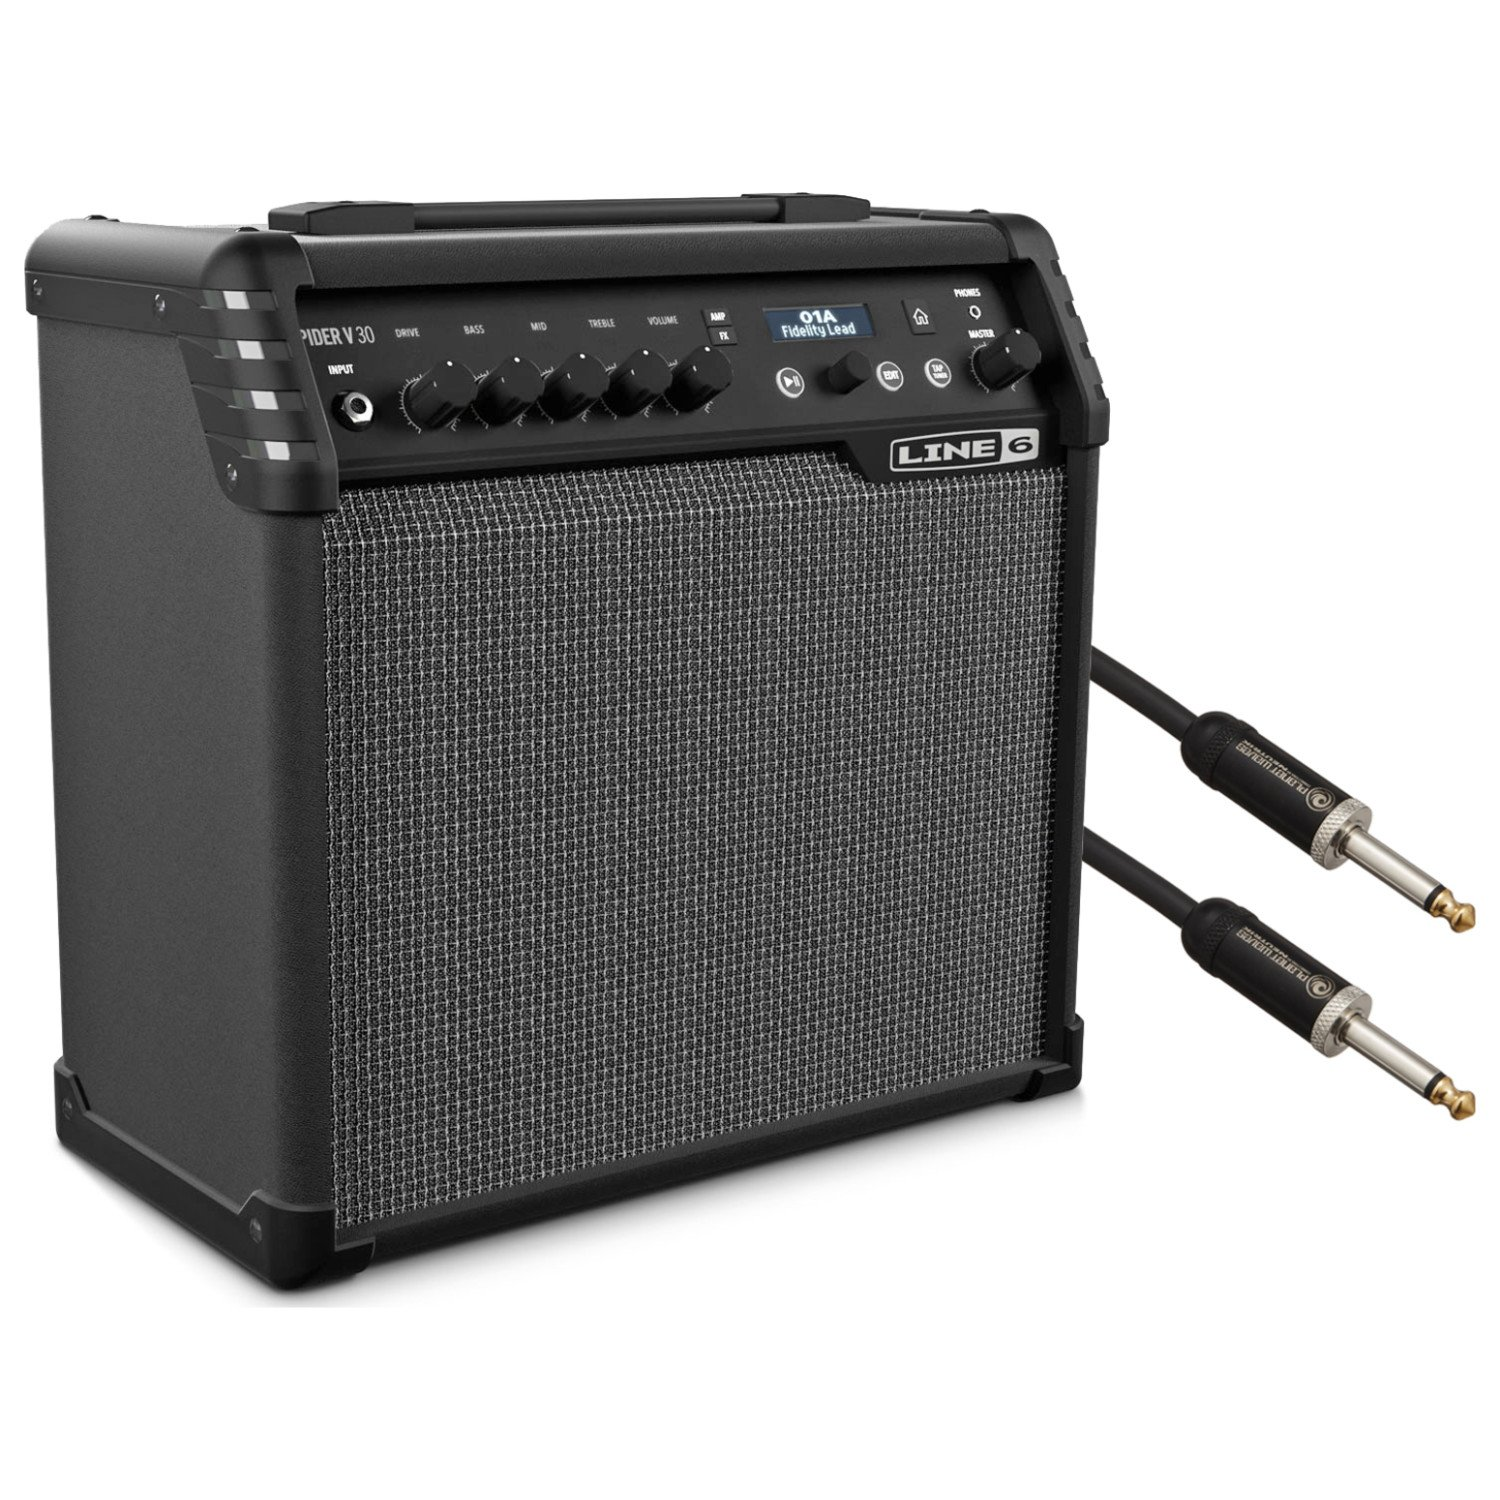 line 6 spider v 30 electric guitar modeling combo amp w cable guitar affinity. Black Bedroom Furniture Sets. Home Design Ideas